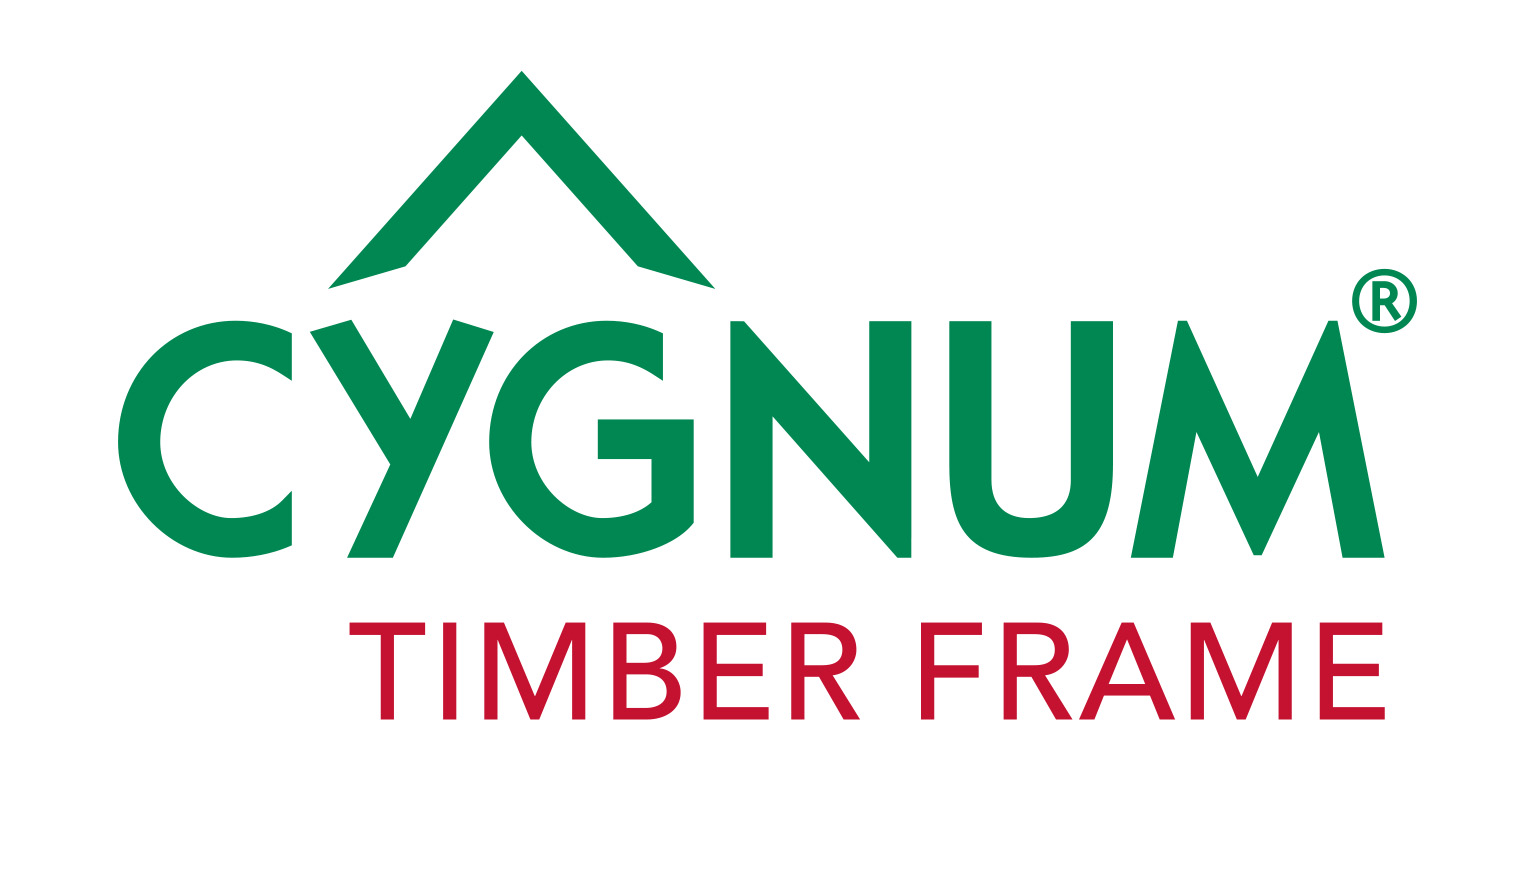 Cygnum Timber Frame